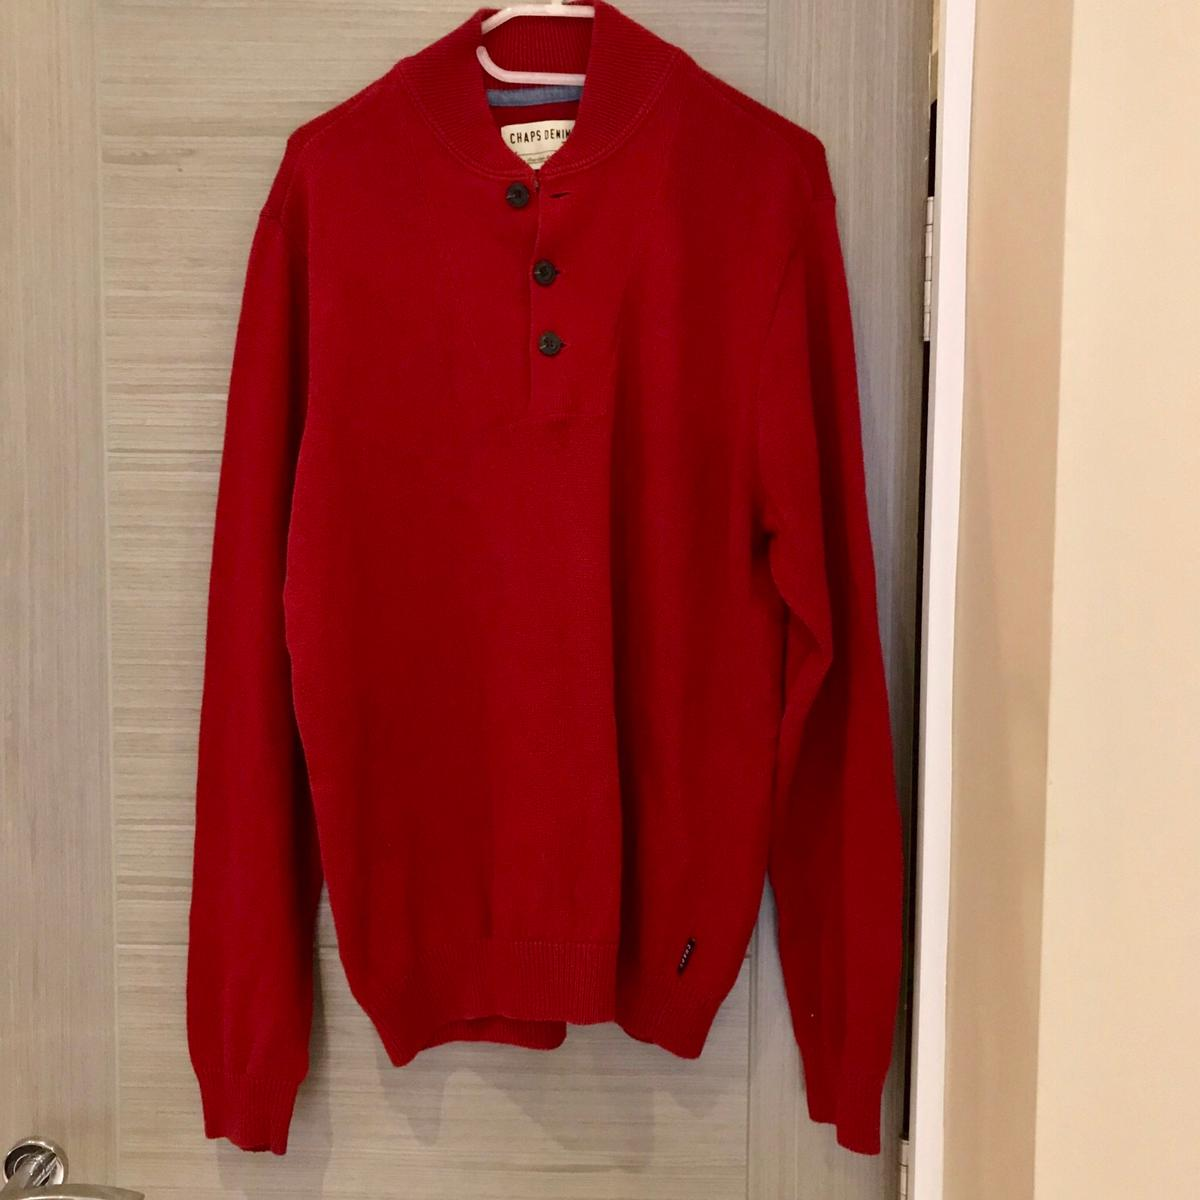 598336f49b7a7a Vintage Chaps Ralph Lauren Red Jumper Button in W6 London for £14.99 ...